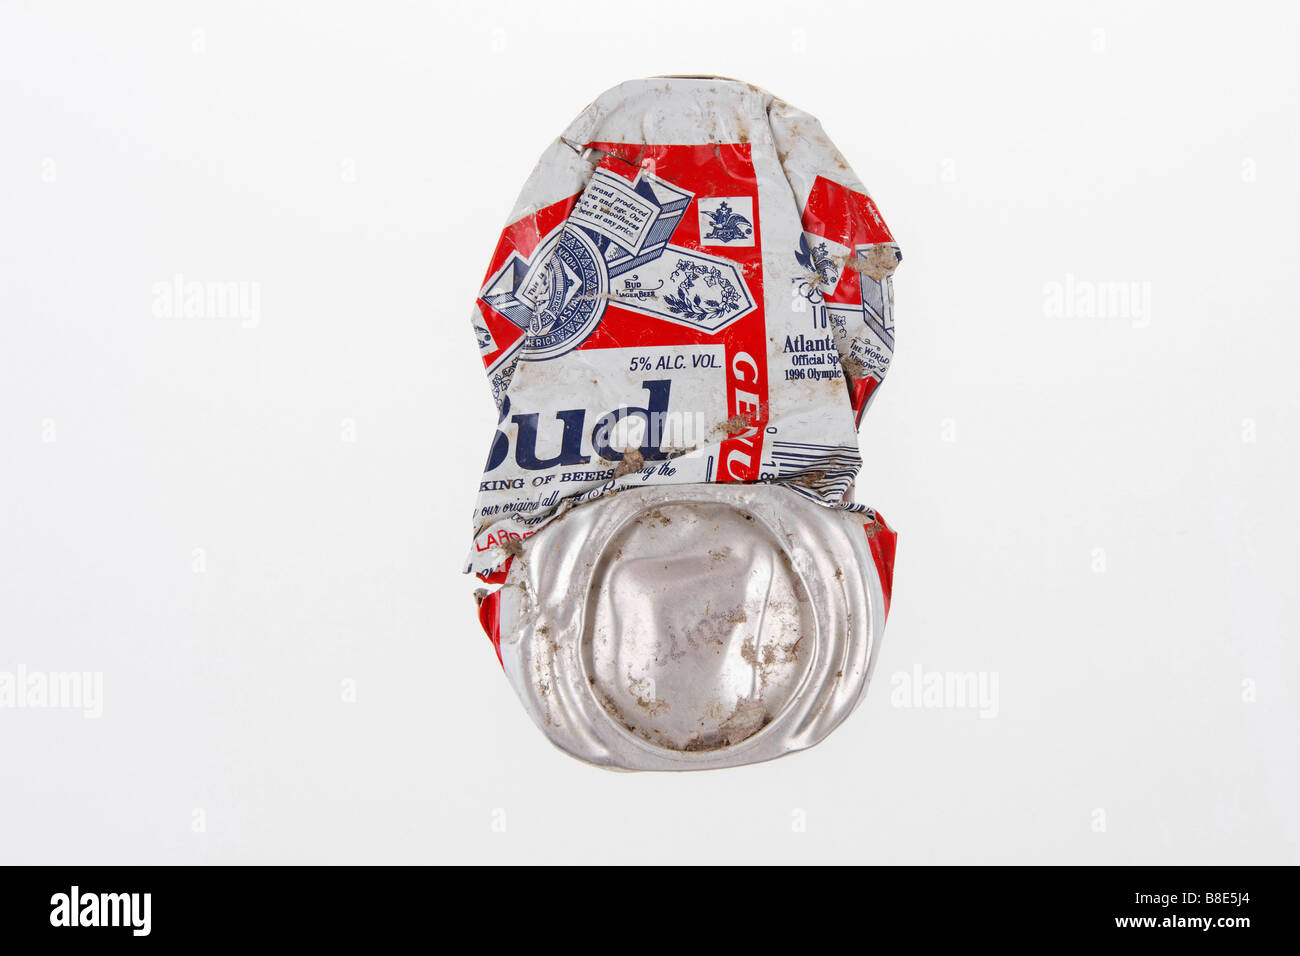 clip image flattened beer aluminium can brand budweiser company anheuser busch usa editorial use only - Stock Image